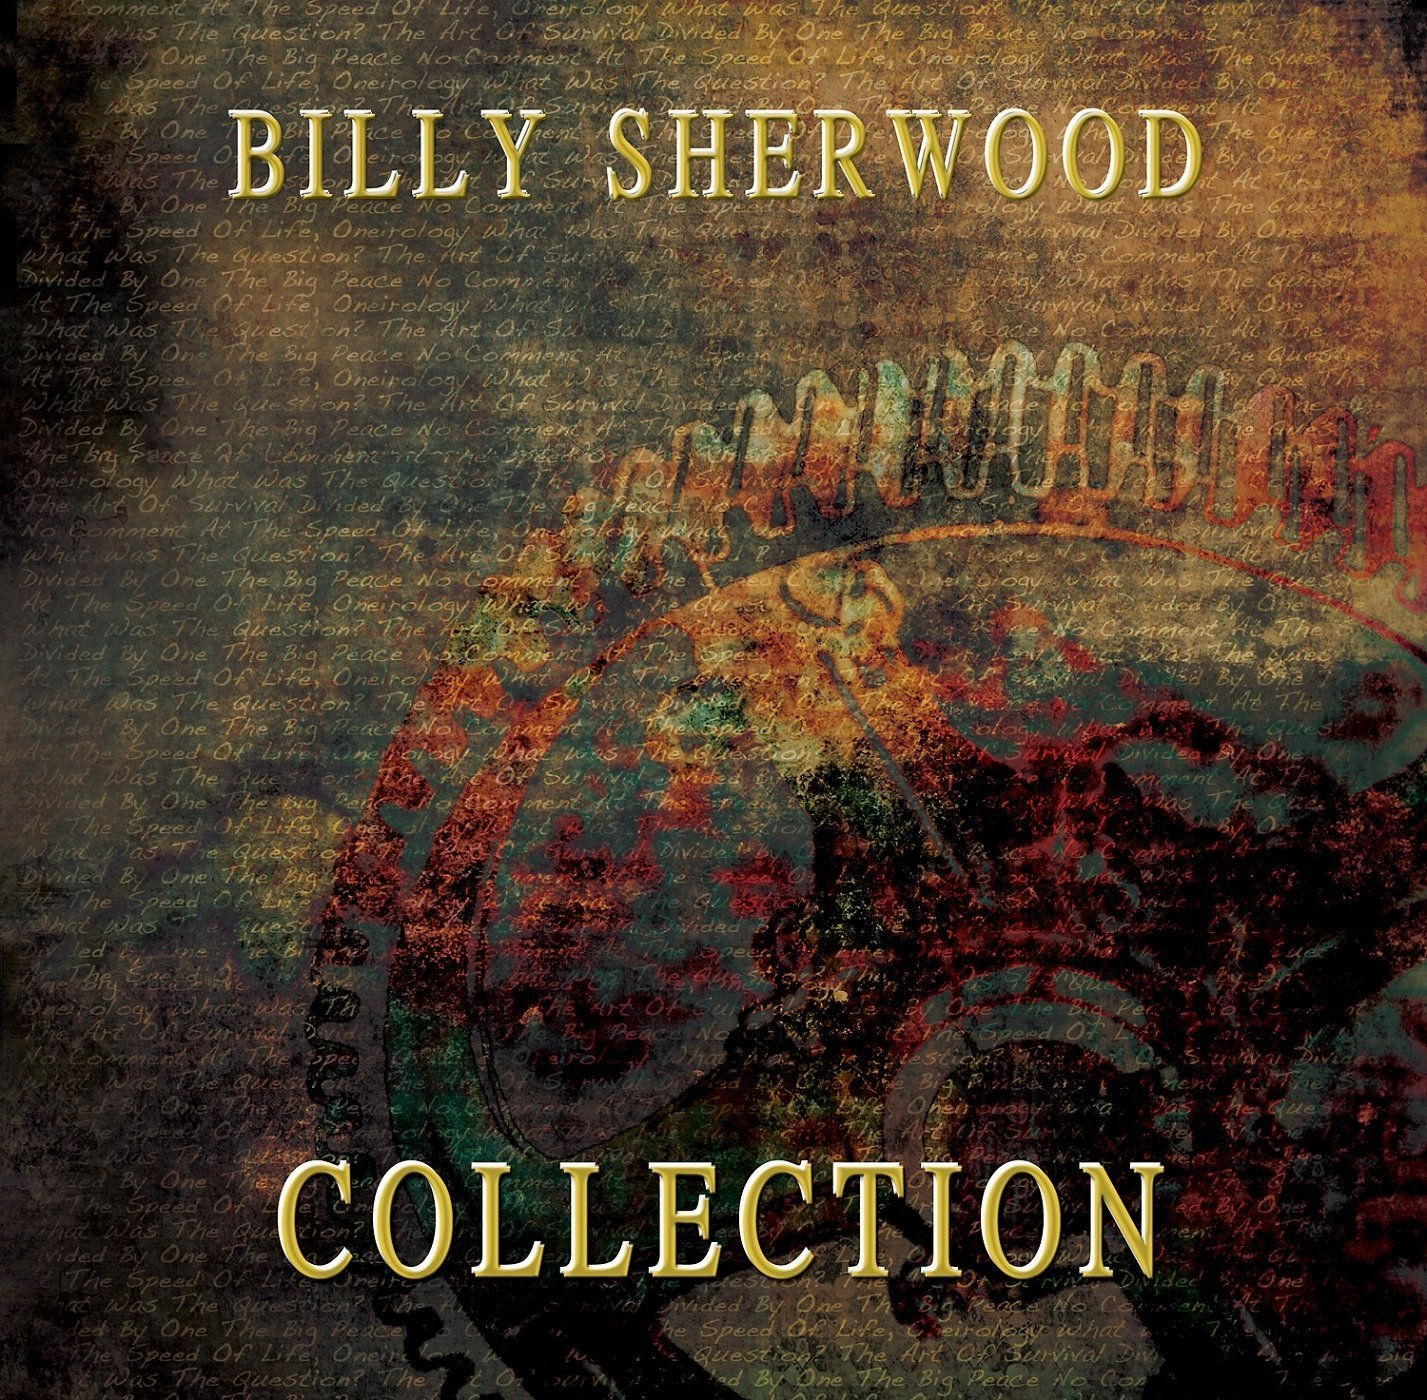 BILLY SHERWOOD Divided By One / Collection